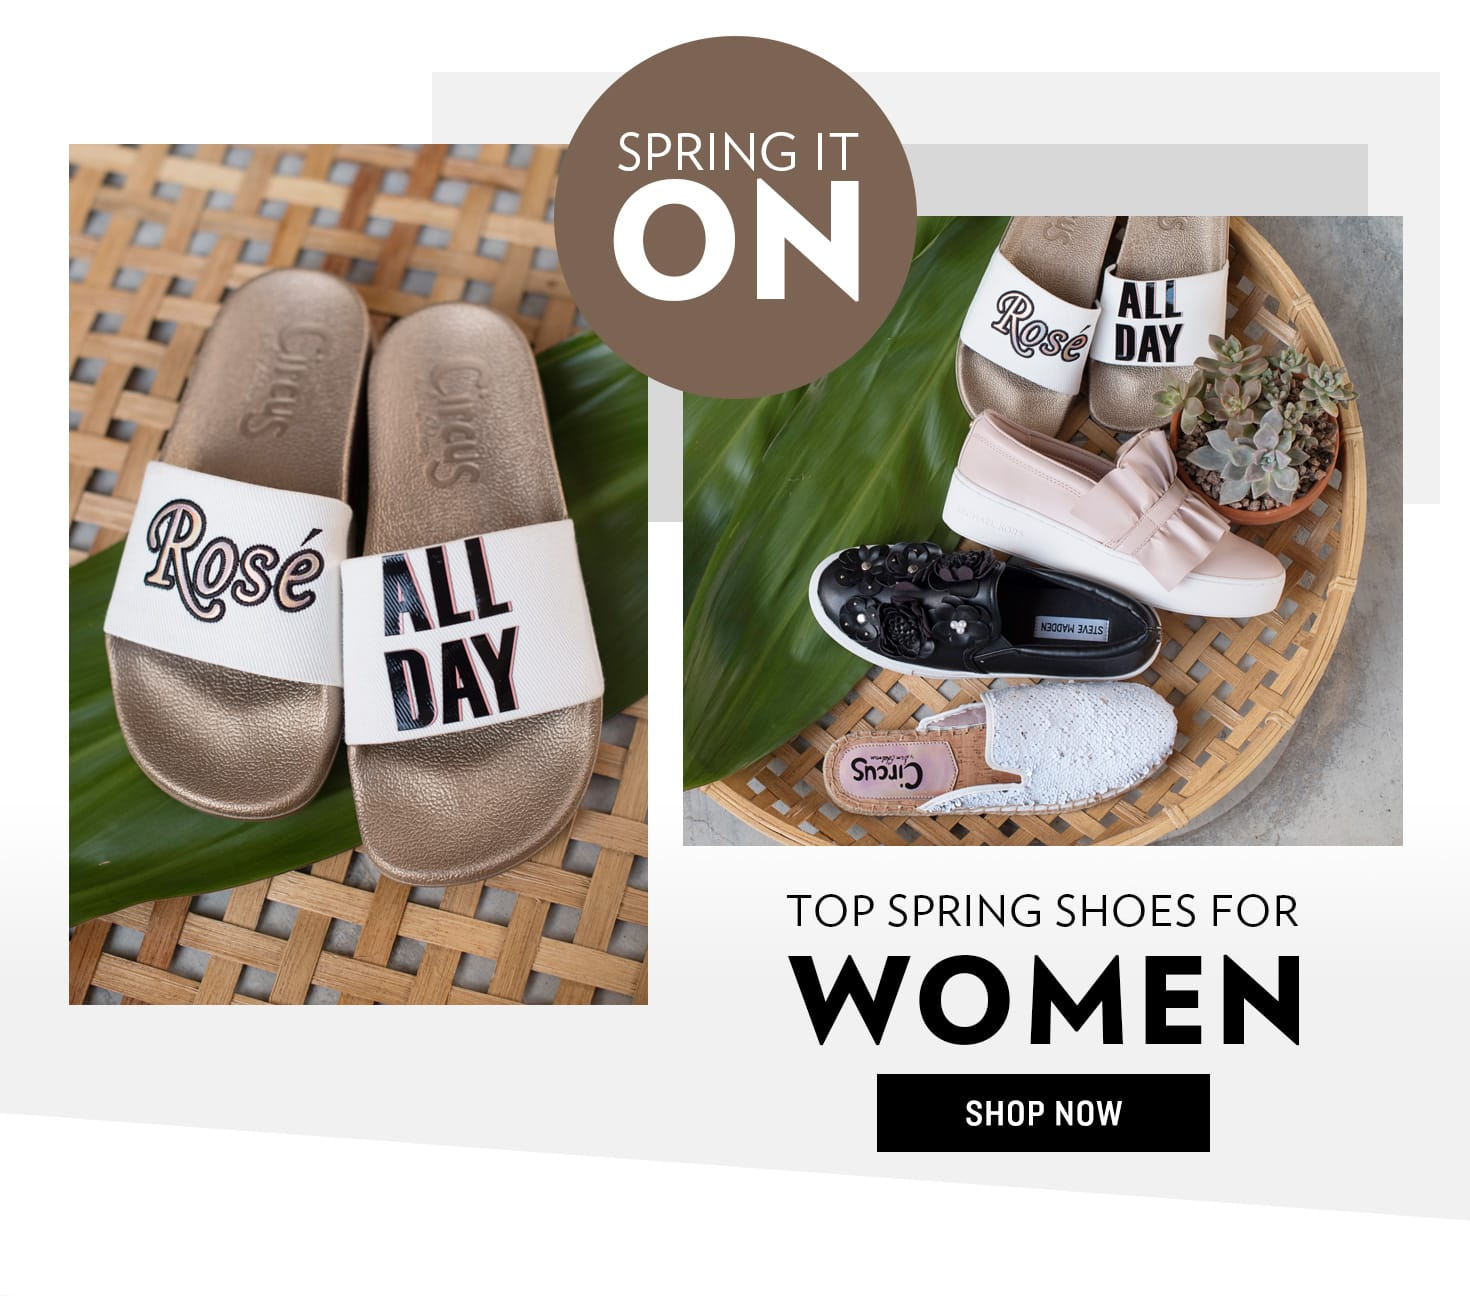 Shop Spring Shoes for Women